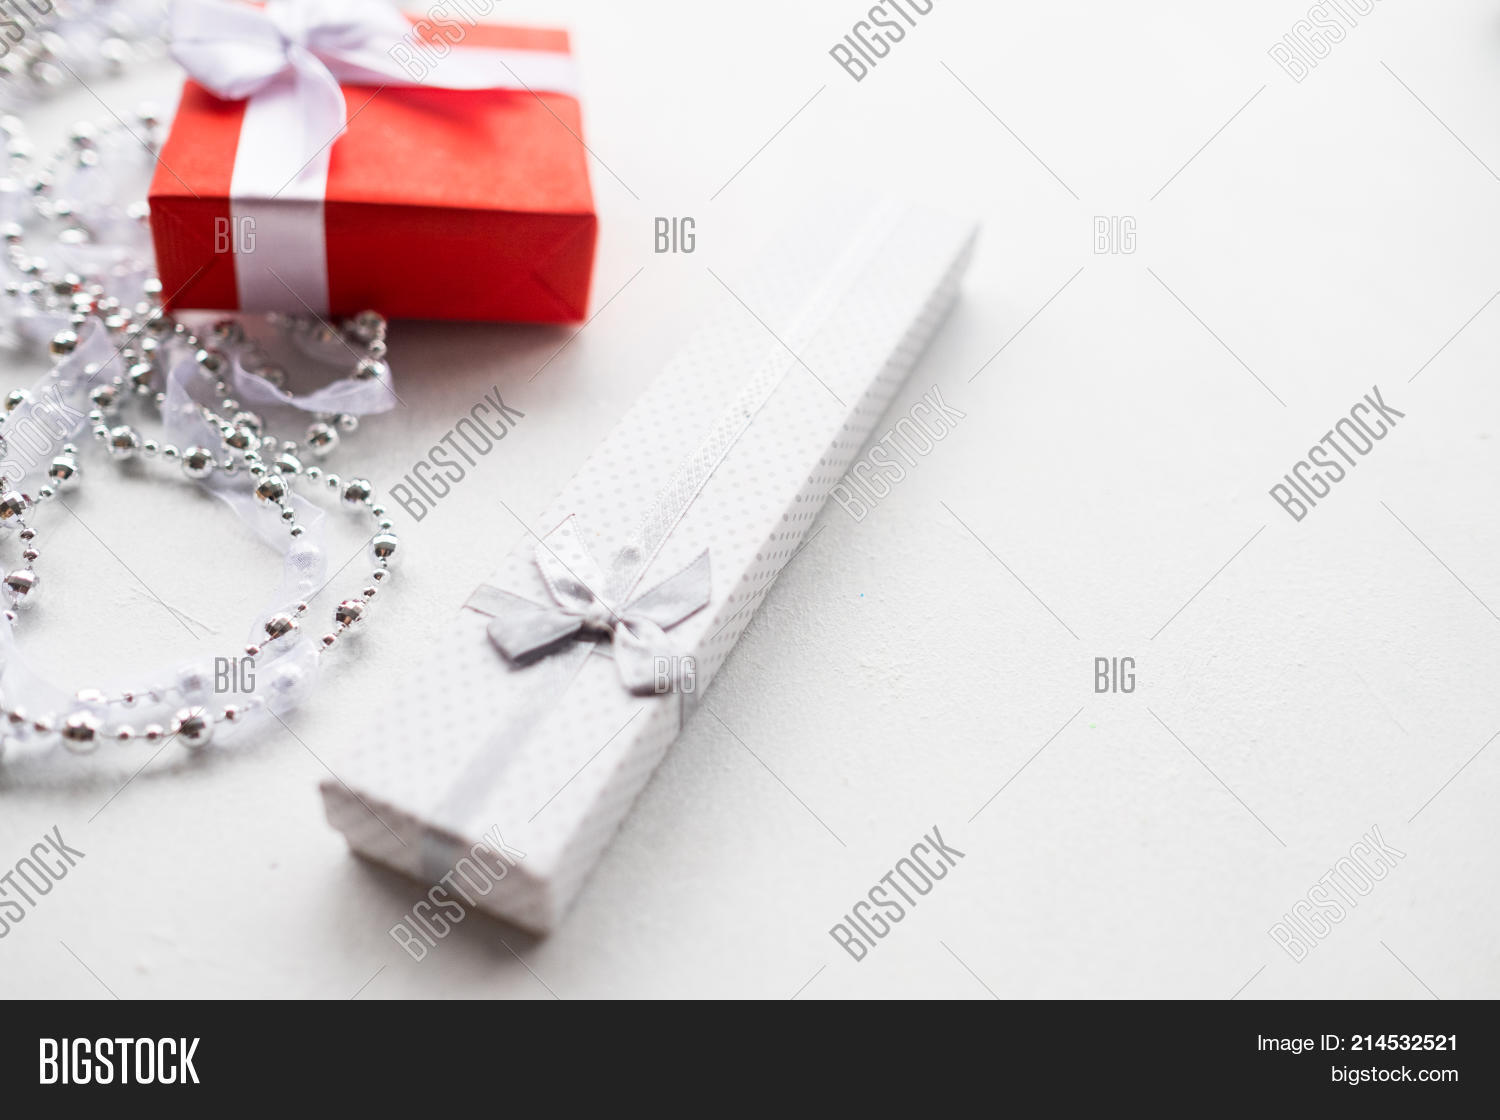 fashionable accessorize gift on white background expensive and luxury jewelry present for birthday new